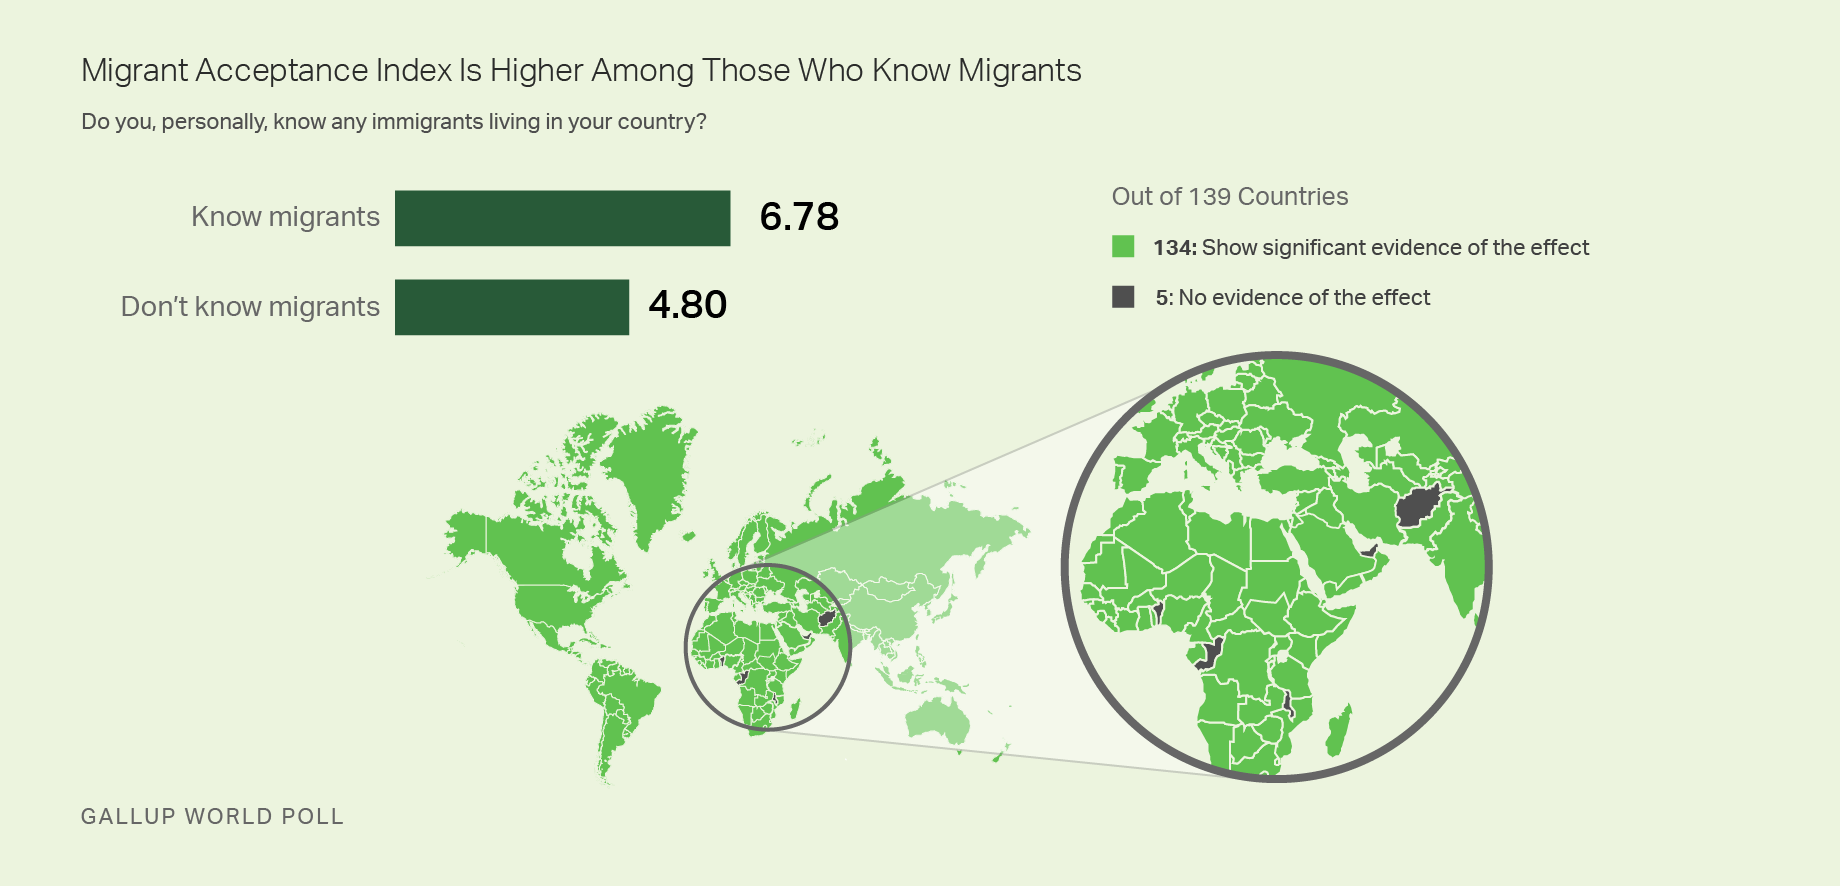 Map and bar graph: Migrant Acceptance Index is higher among those who know migrants (6.78/9.0) than among those who don't (4.80/9.0).